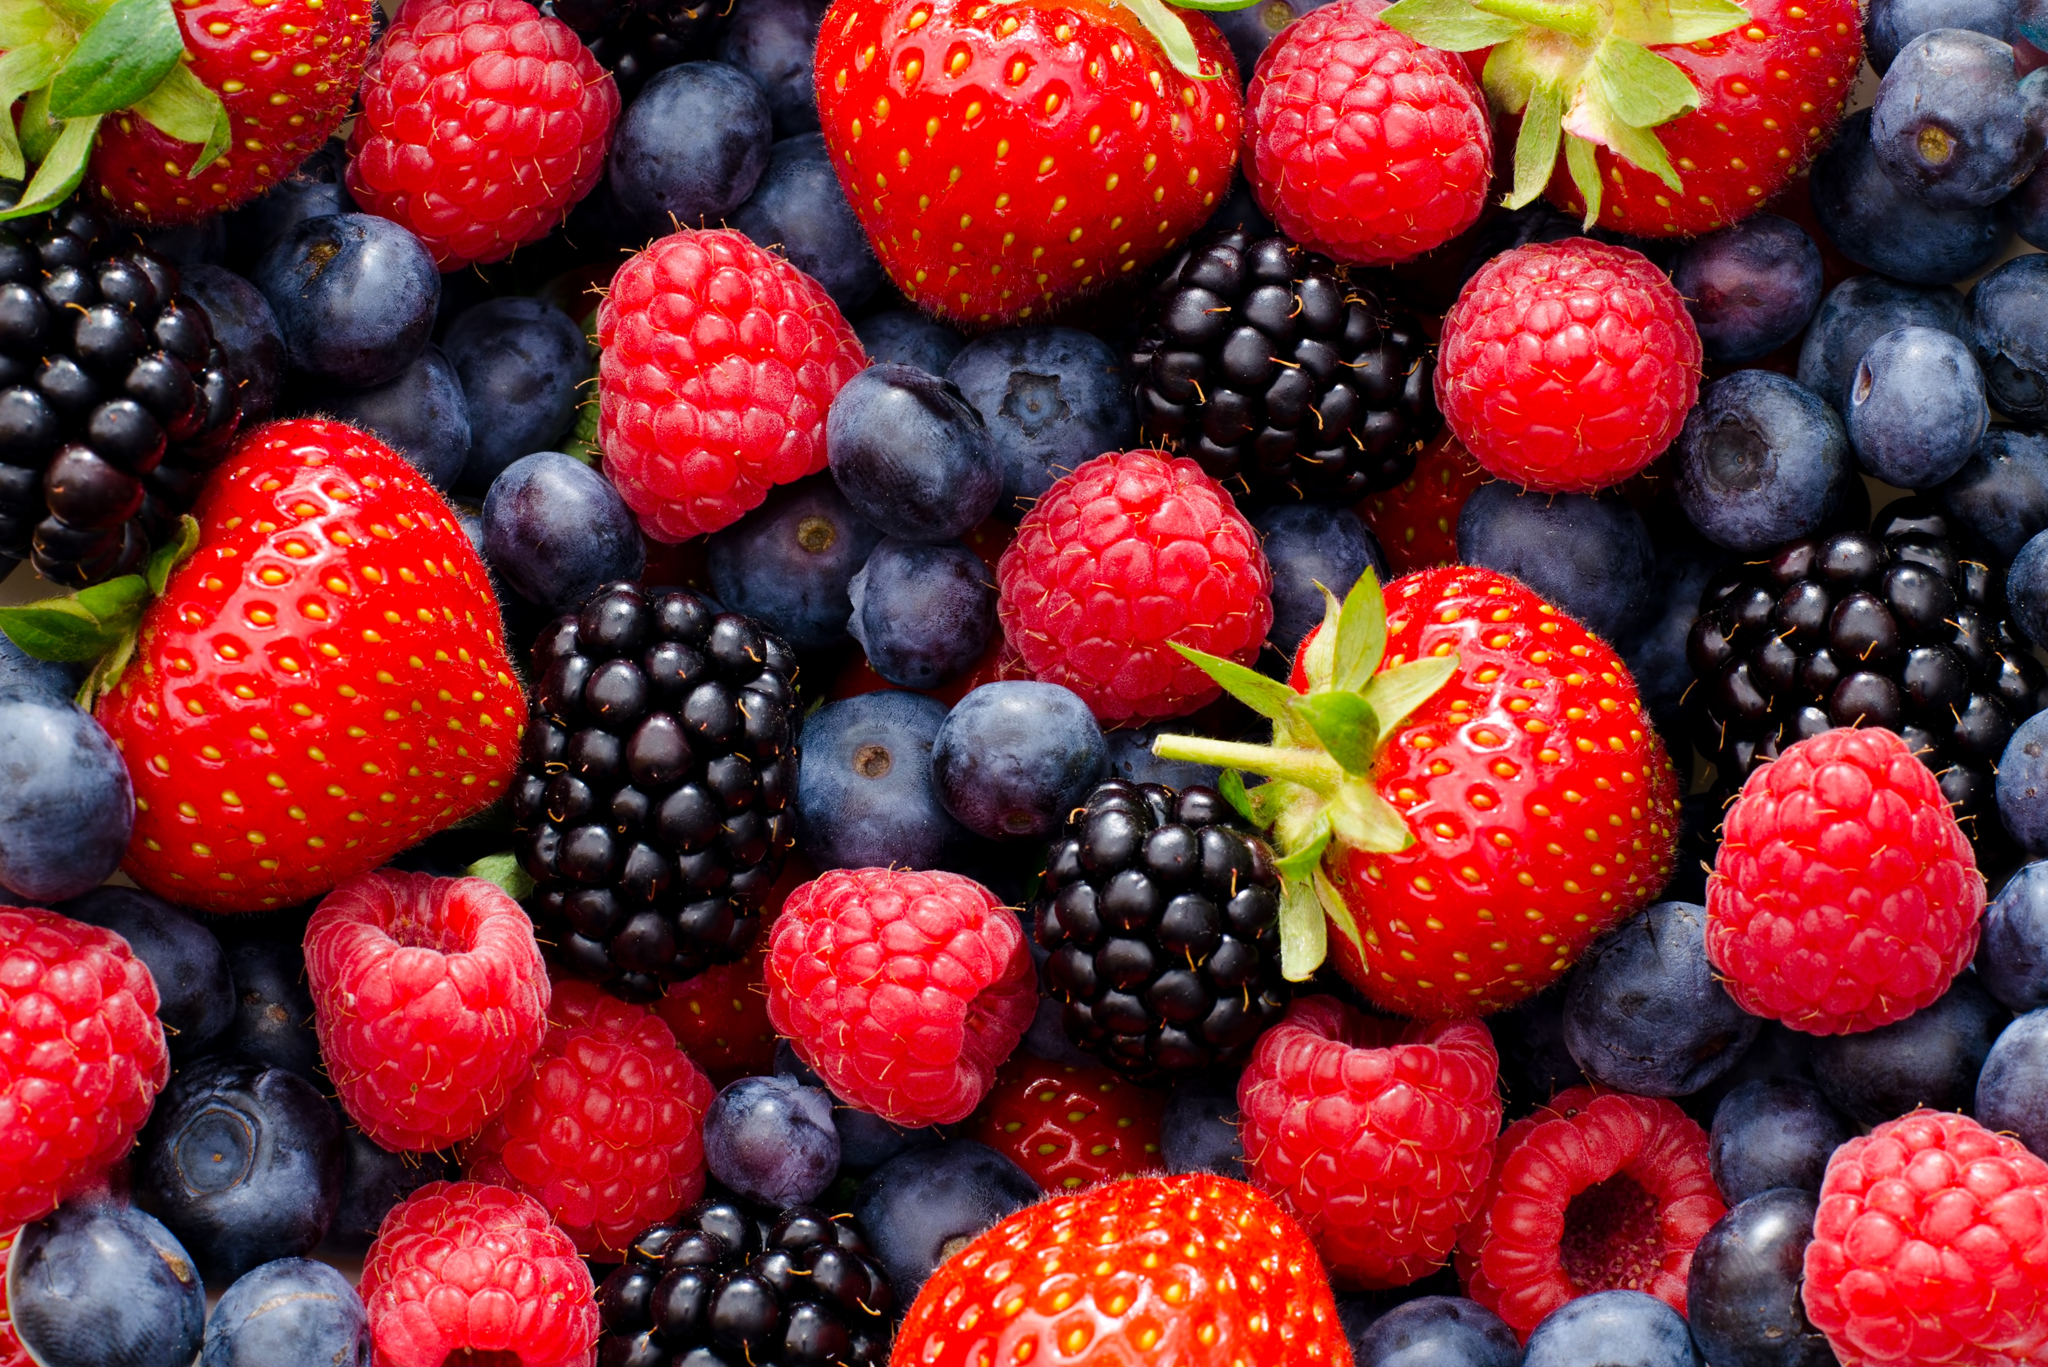 Distributors of Berries